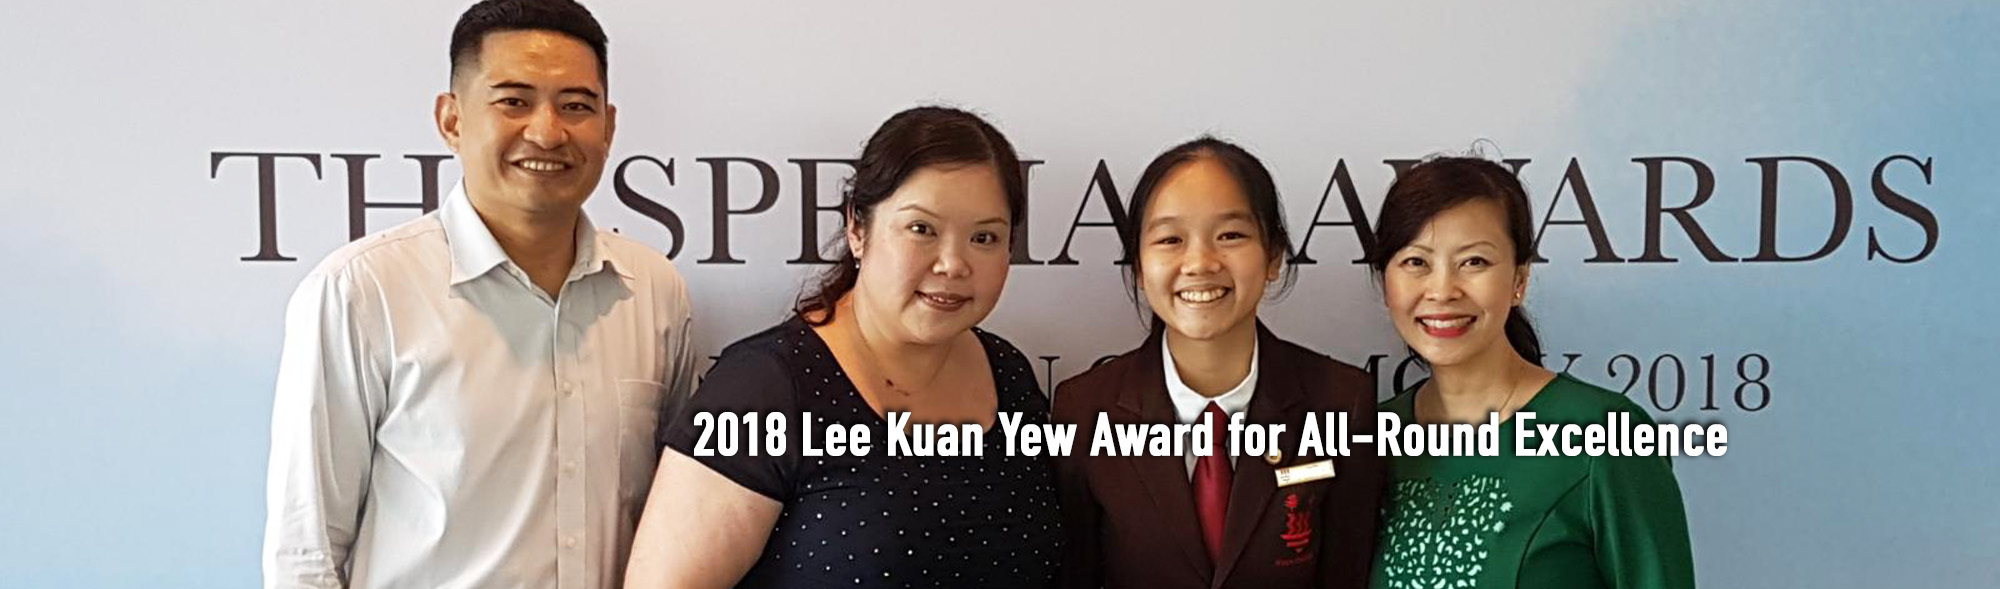 2018 Lee Kuan Yew Award for All-Round Excellence